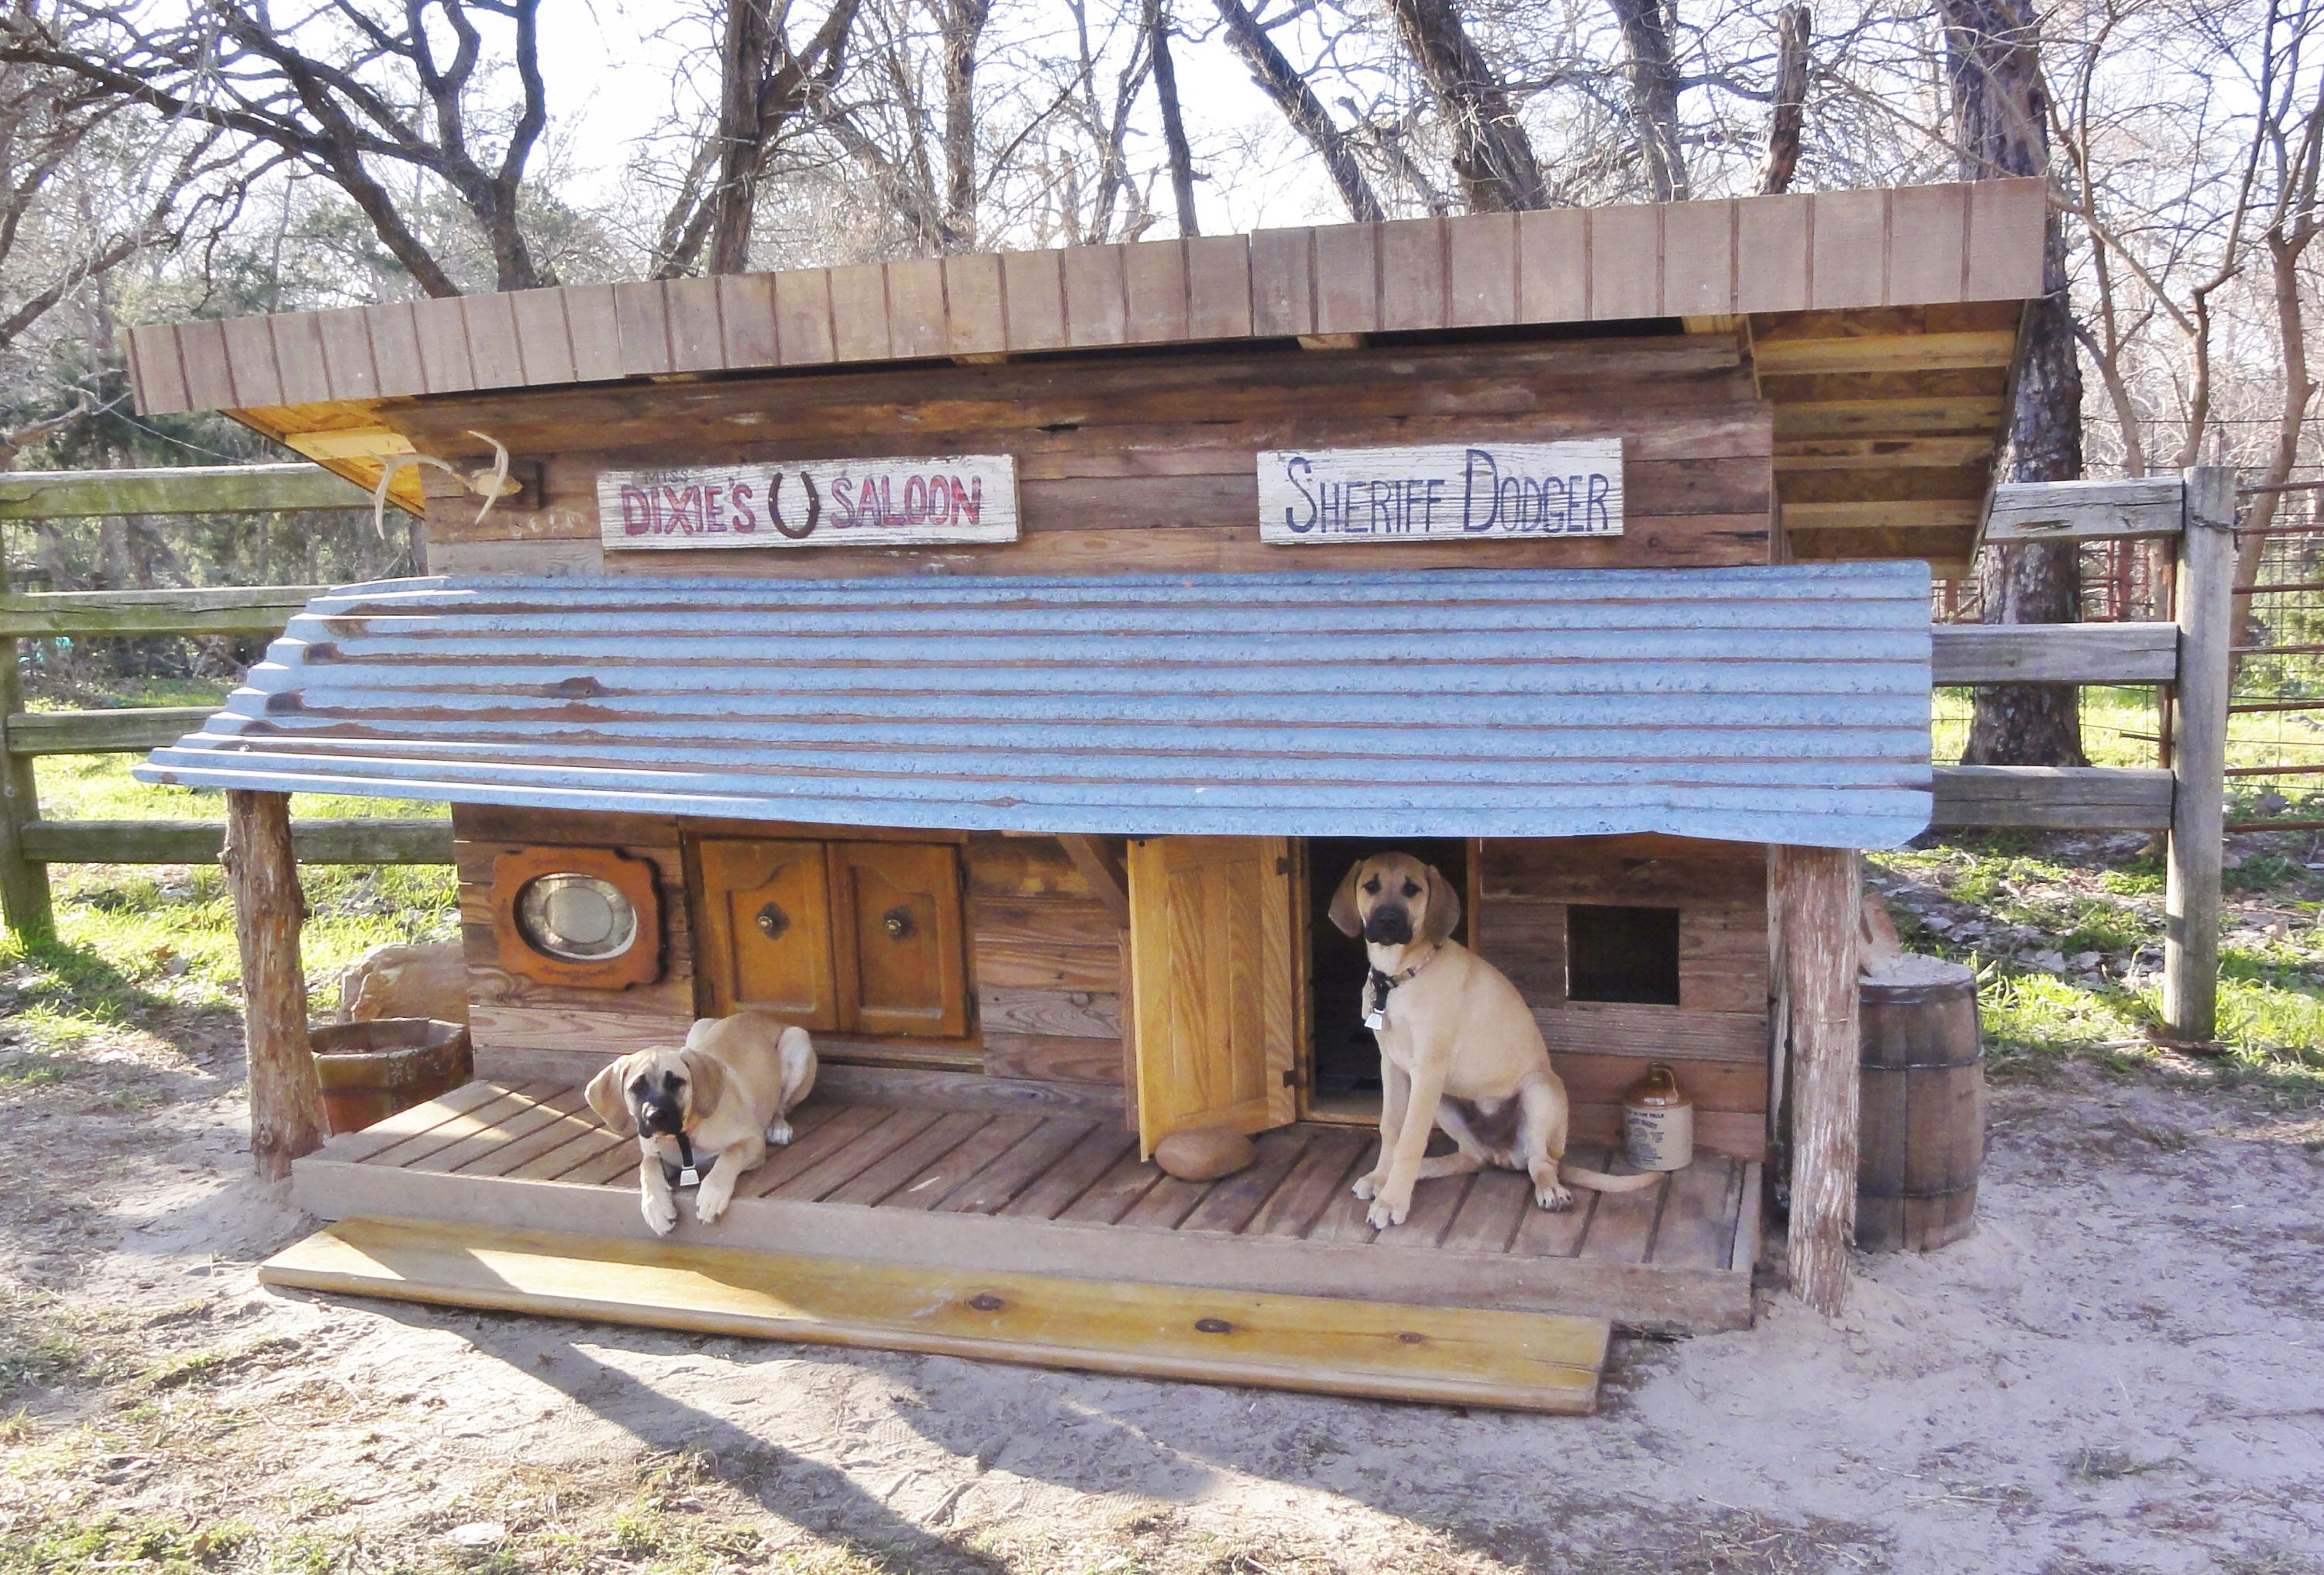 Dixie And Dodger S Wild West Dog House Is Finished It Took A Month Of Weekends To Build And It Sure Fits In Here At The Ranch Dog Houses Dog House Dog